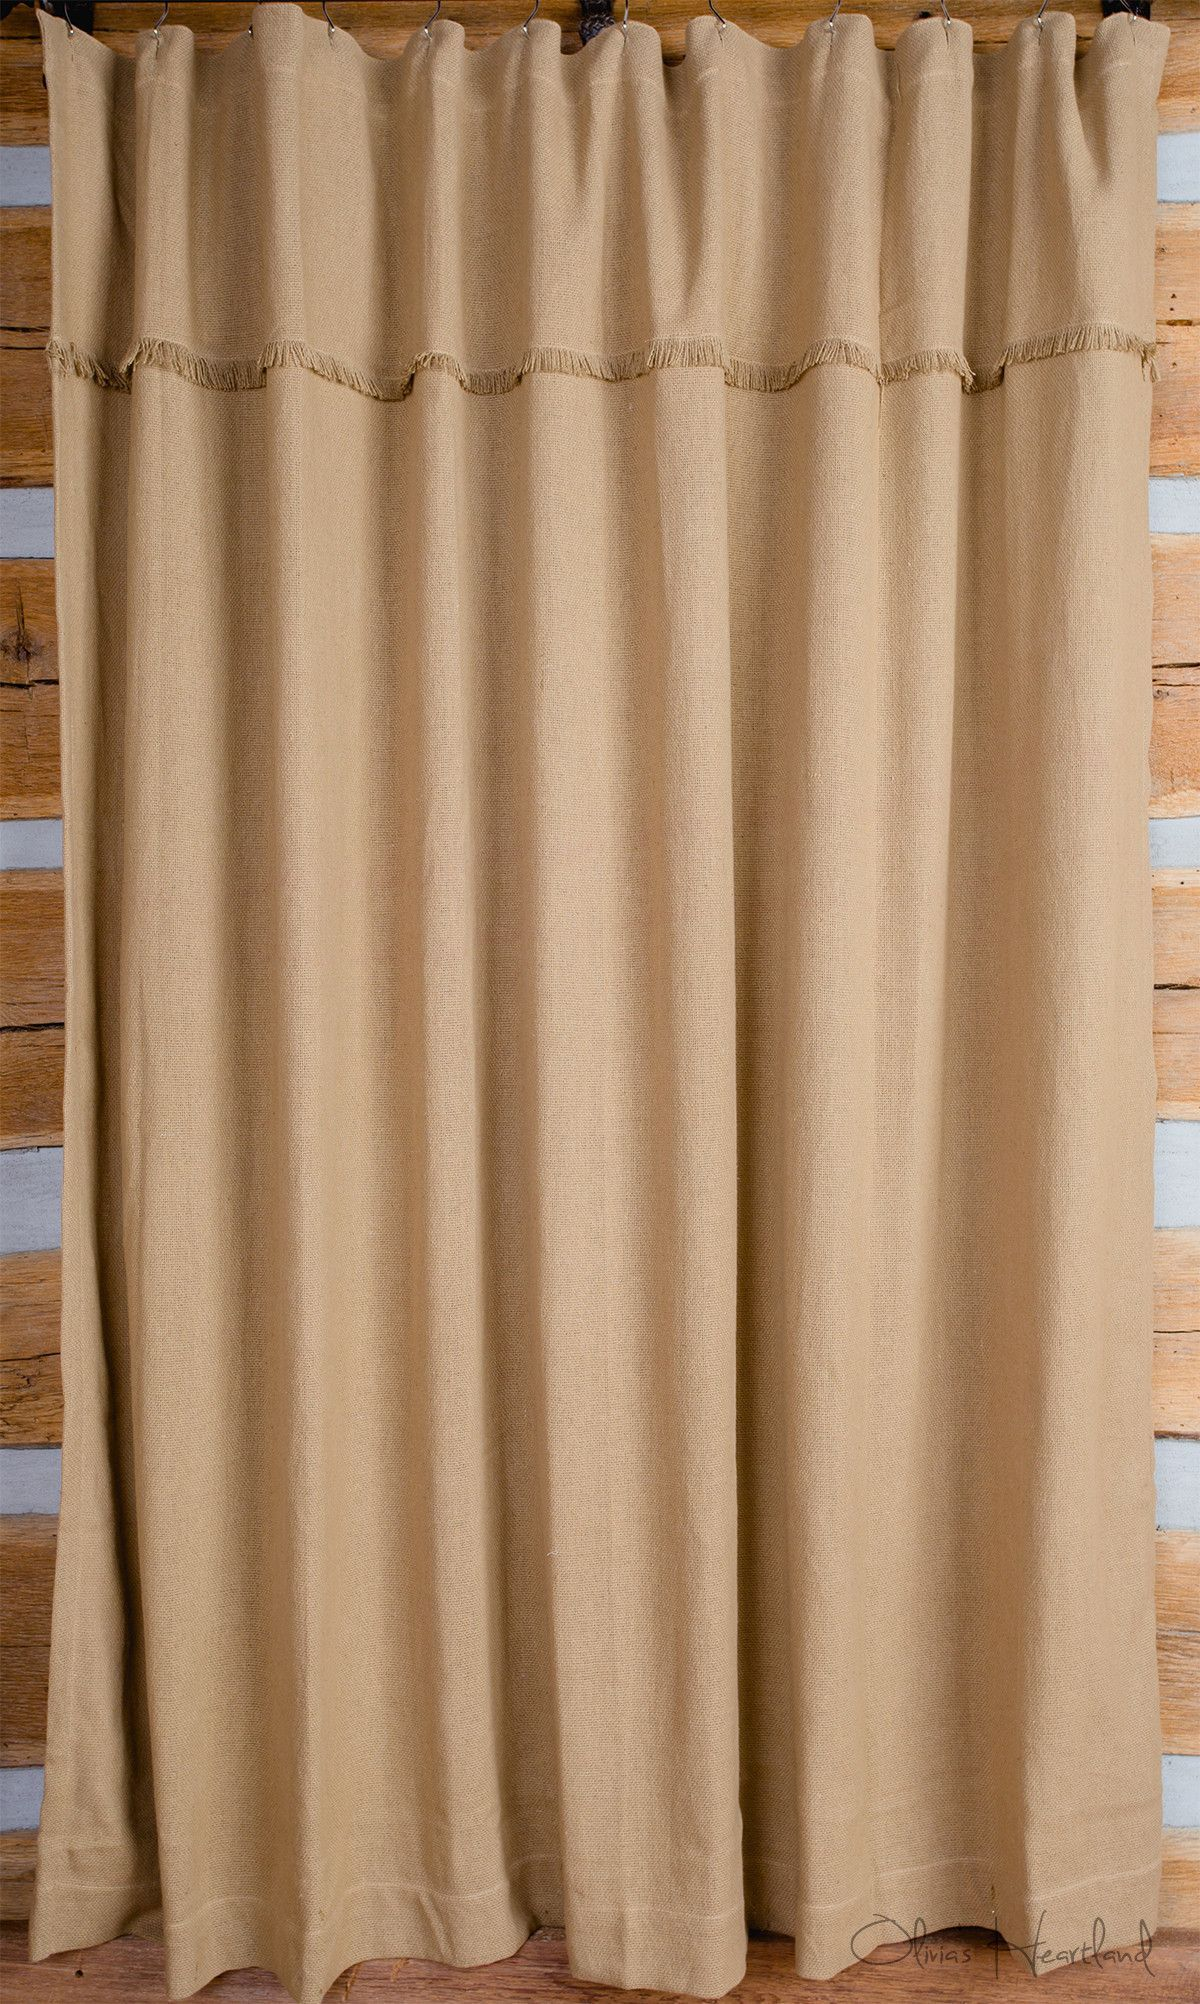 Deluxe Burlap Natural Tan Shower Curtain Burlap Shower Curtains